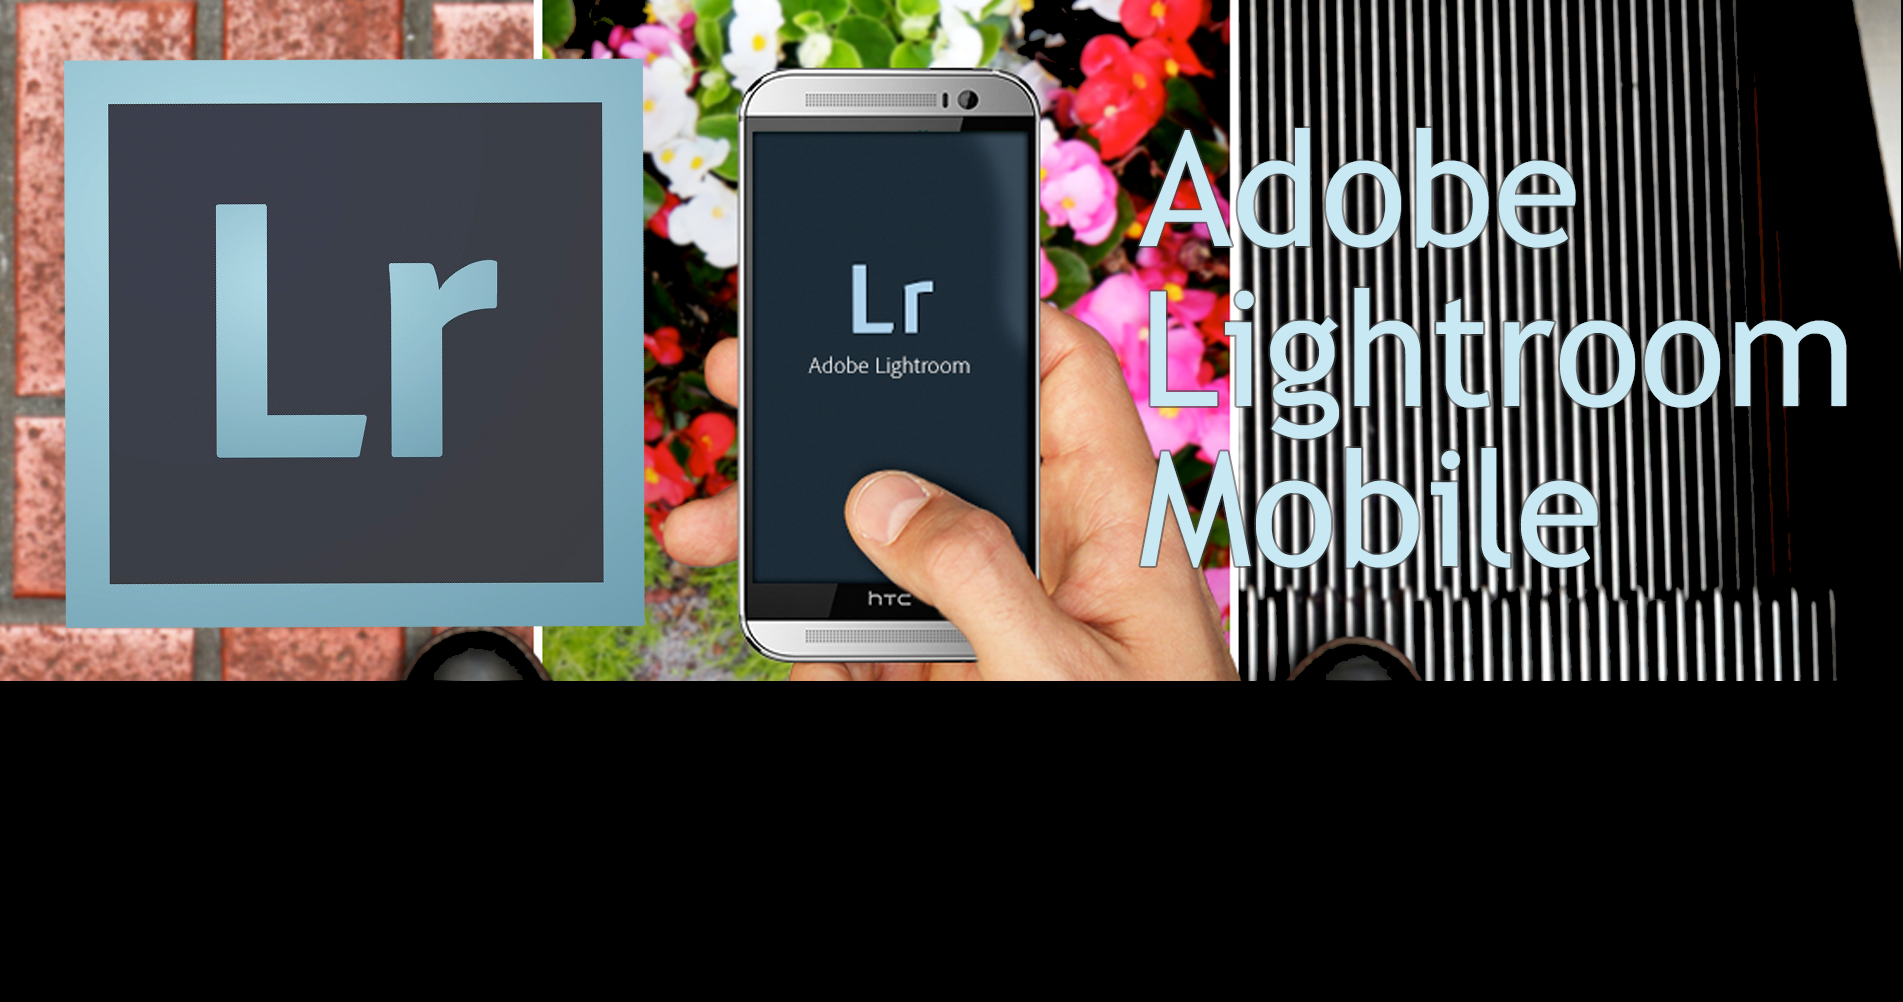 lightroom-mobile-inner-banner-03